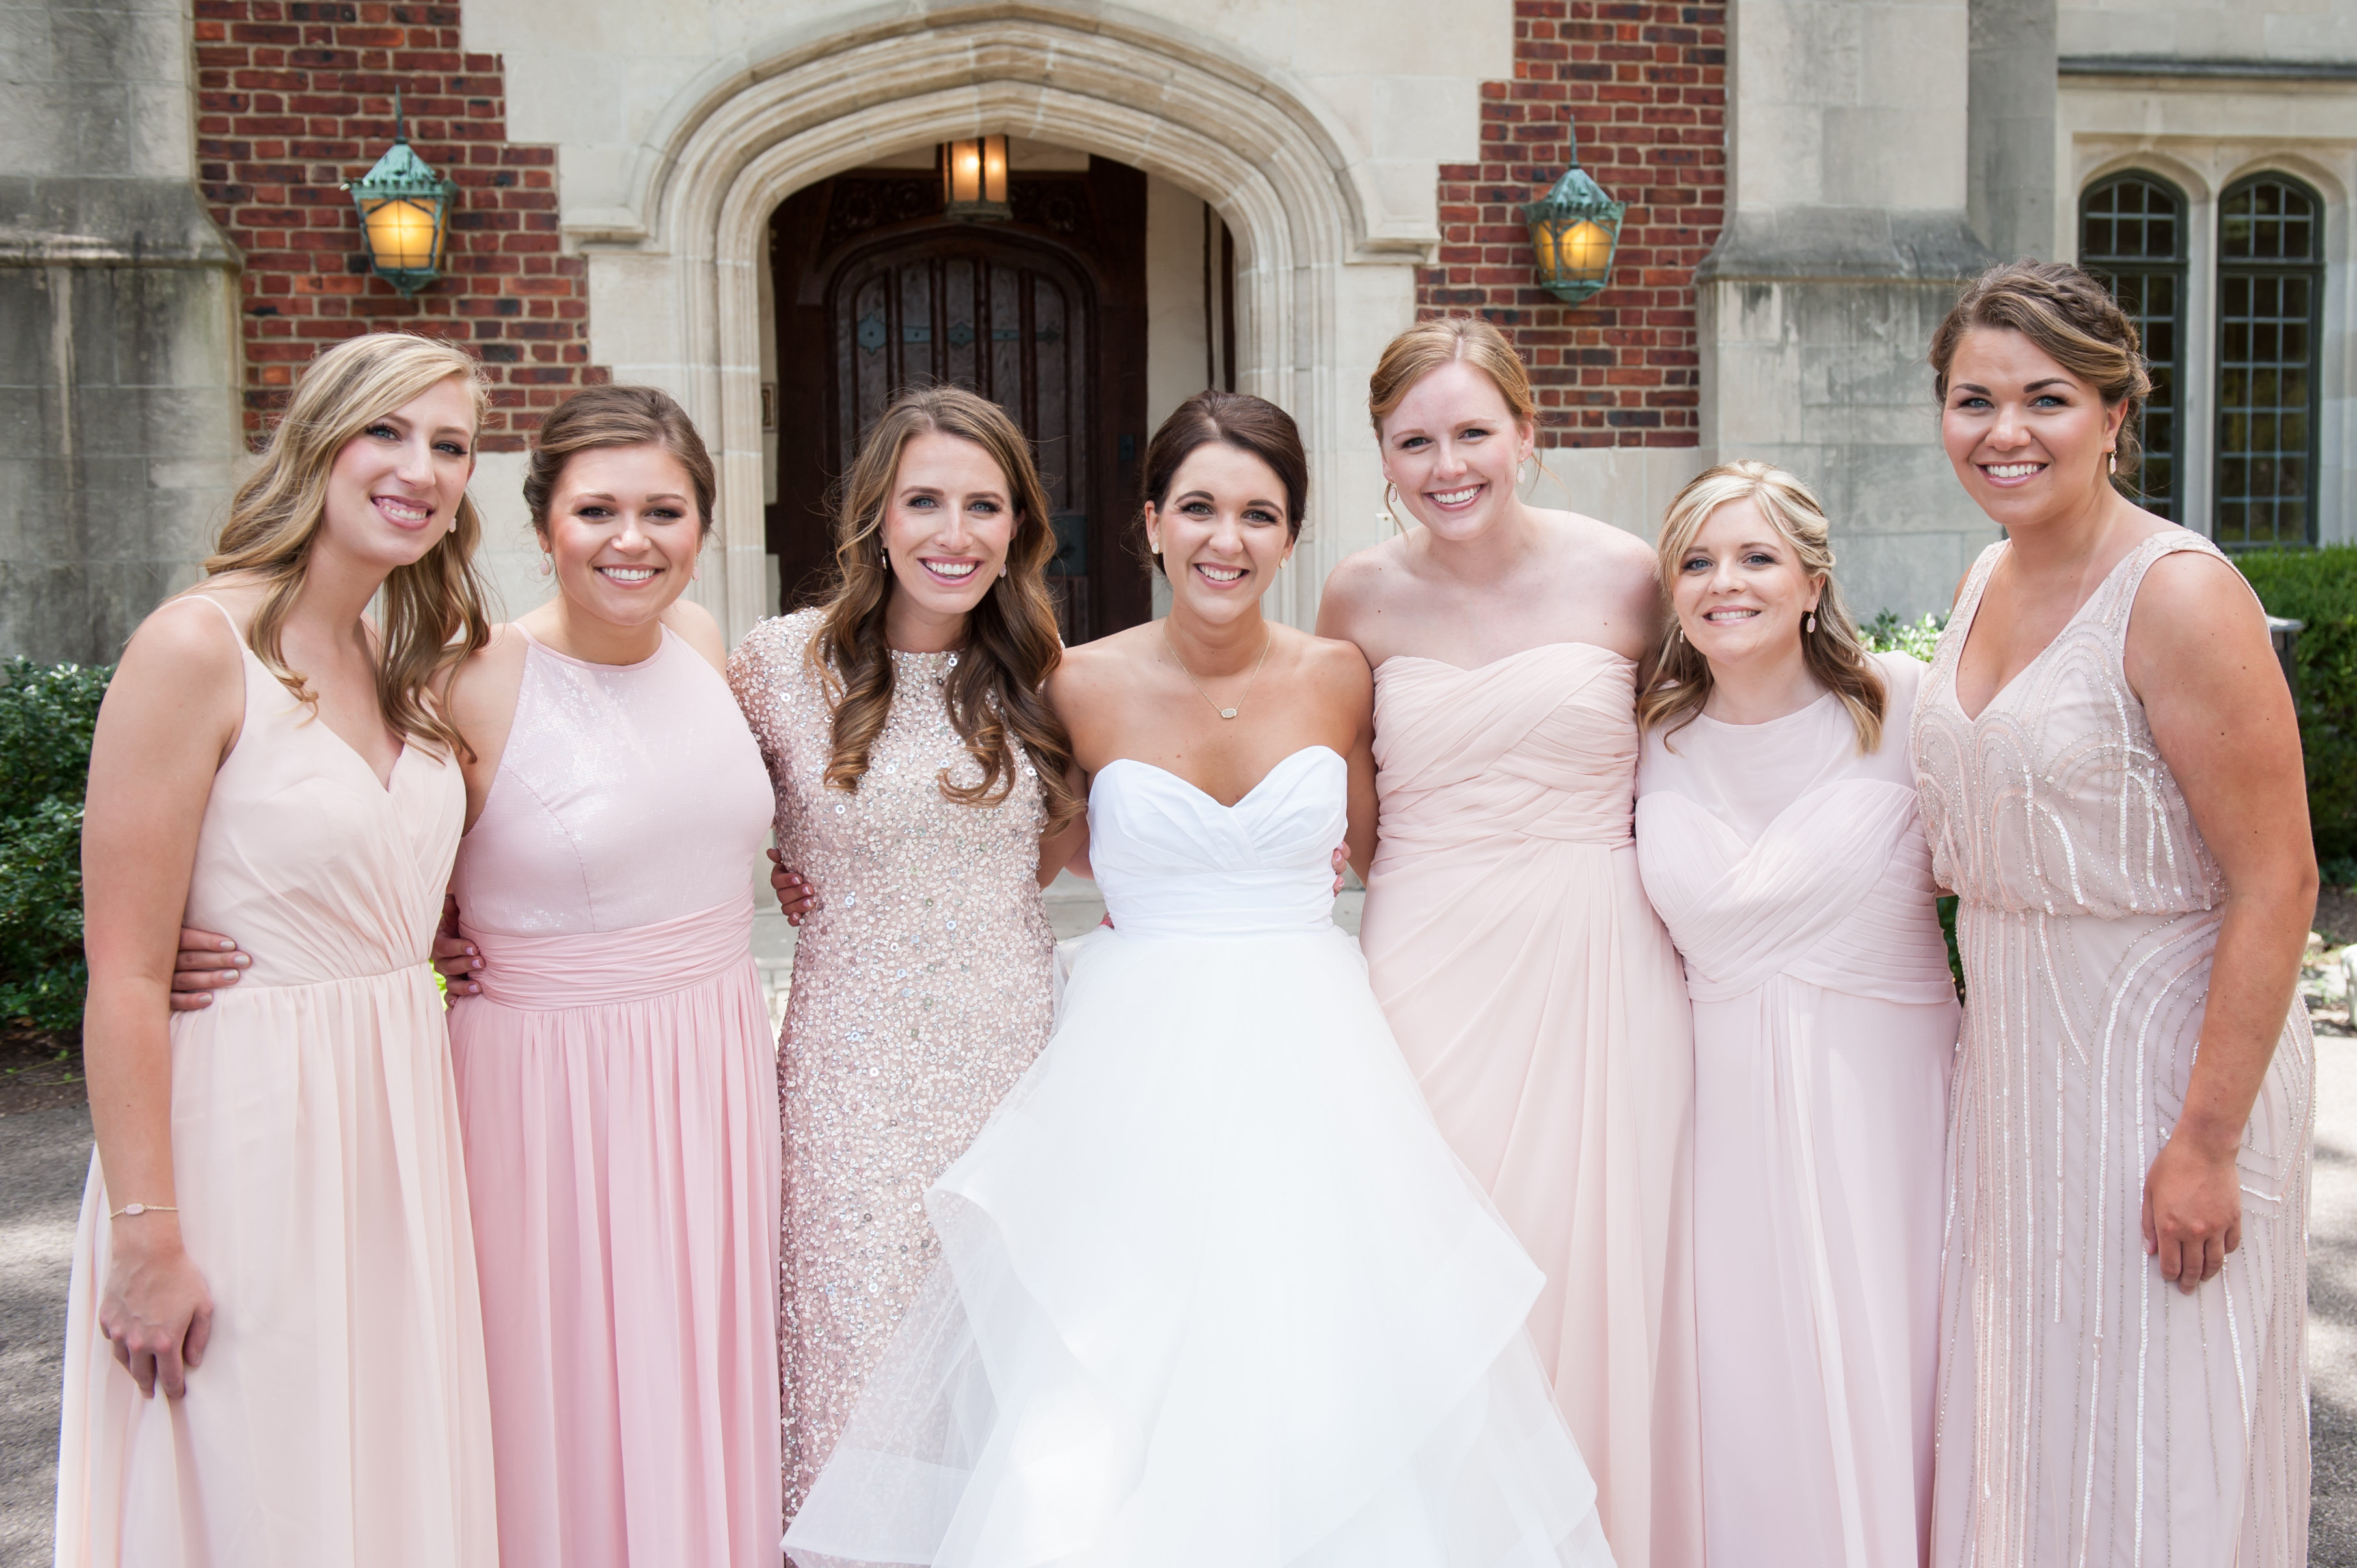 View More: http://benelsassphotography.pass.us/wedding--molly-and-ted